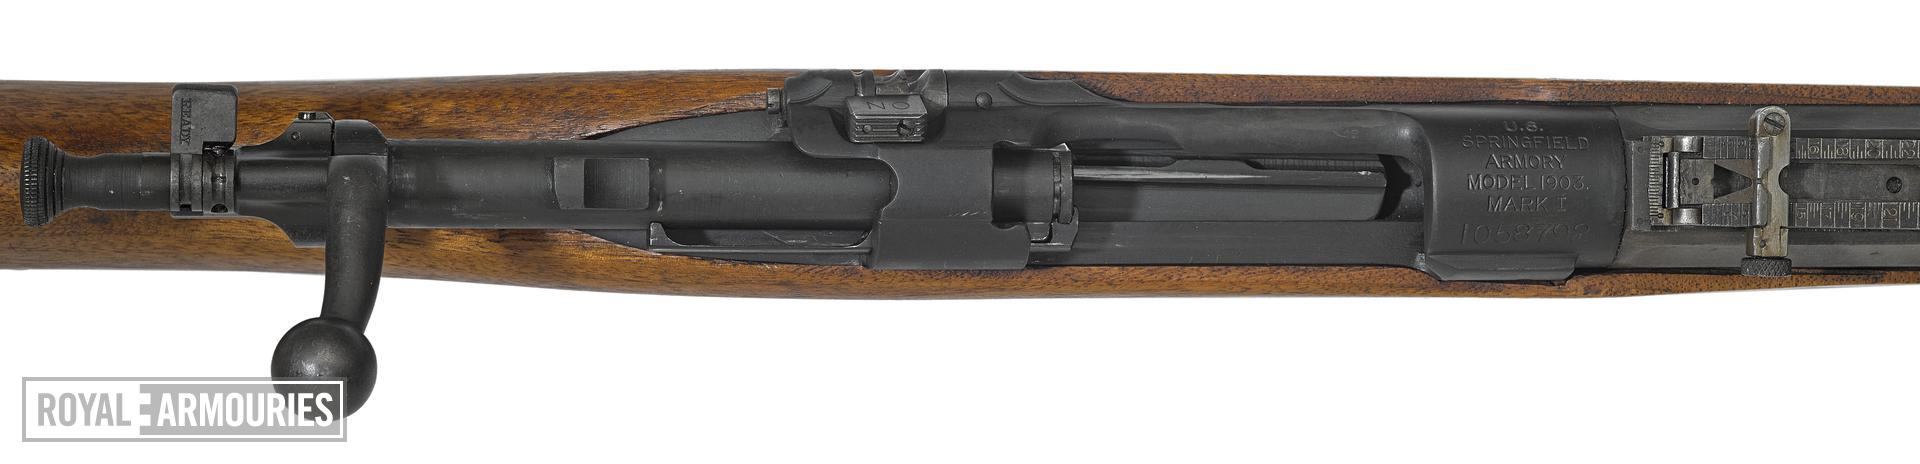 Model of 1903 Mark 1 Springfield rifle with Pedersen Device